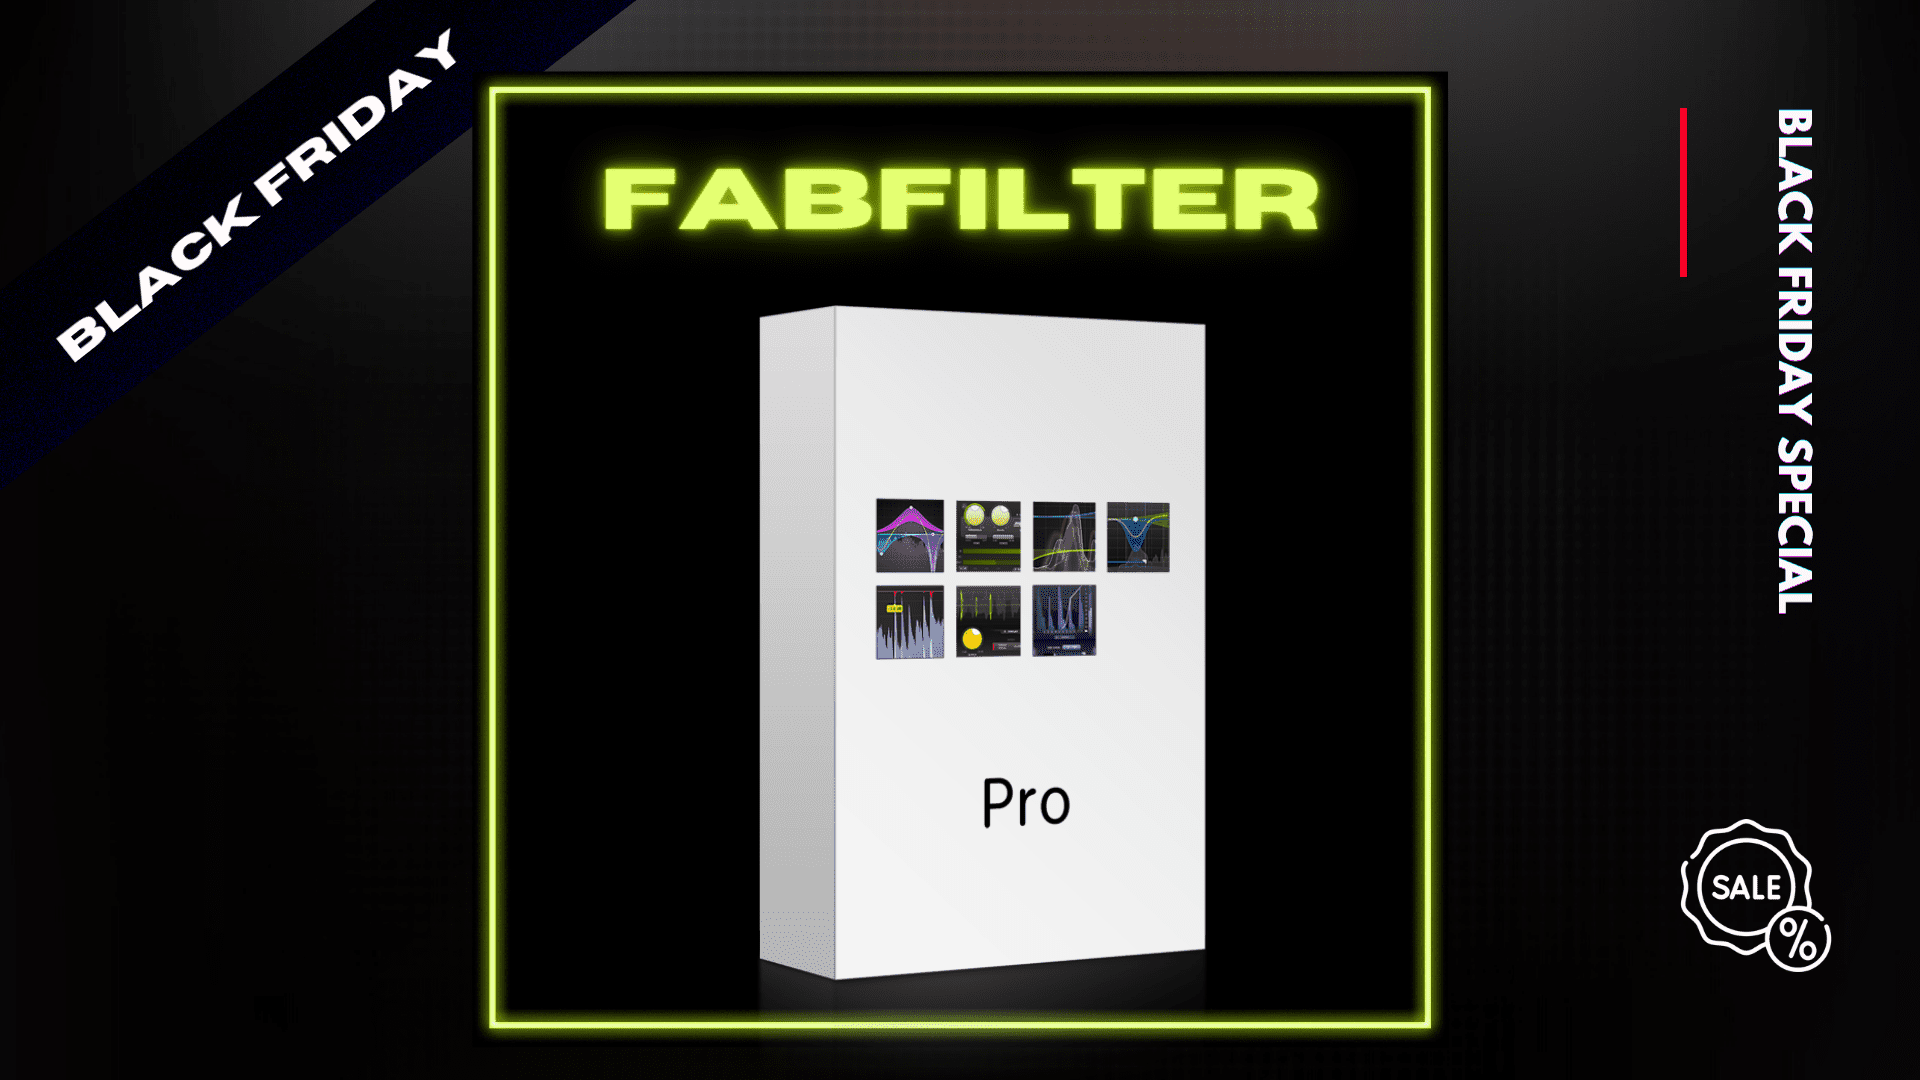 fabfilter black friday 2020 deals